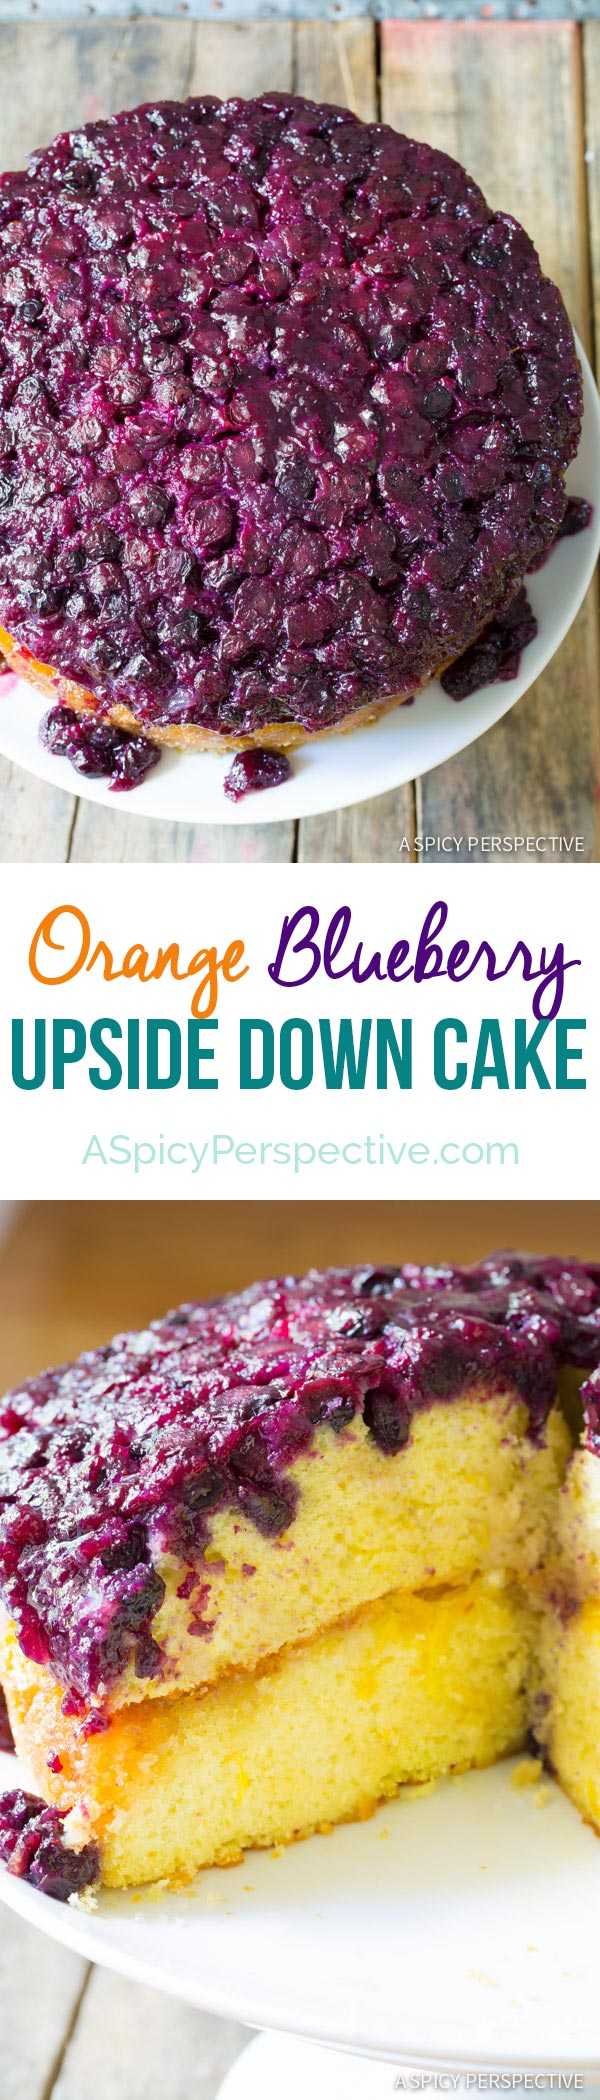 Simple Moist Orange Blueberry Upside Down Cake on ASpicyPerspective.com #cake